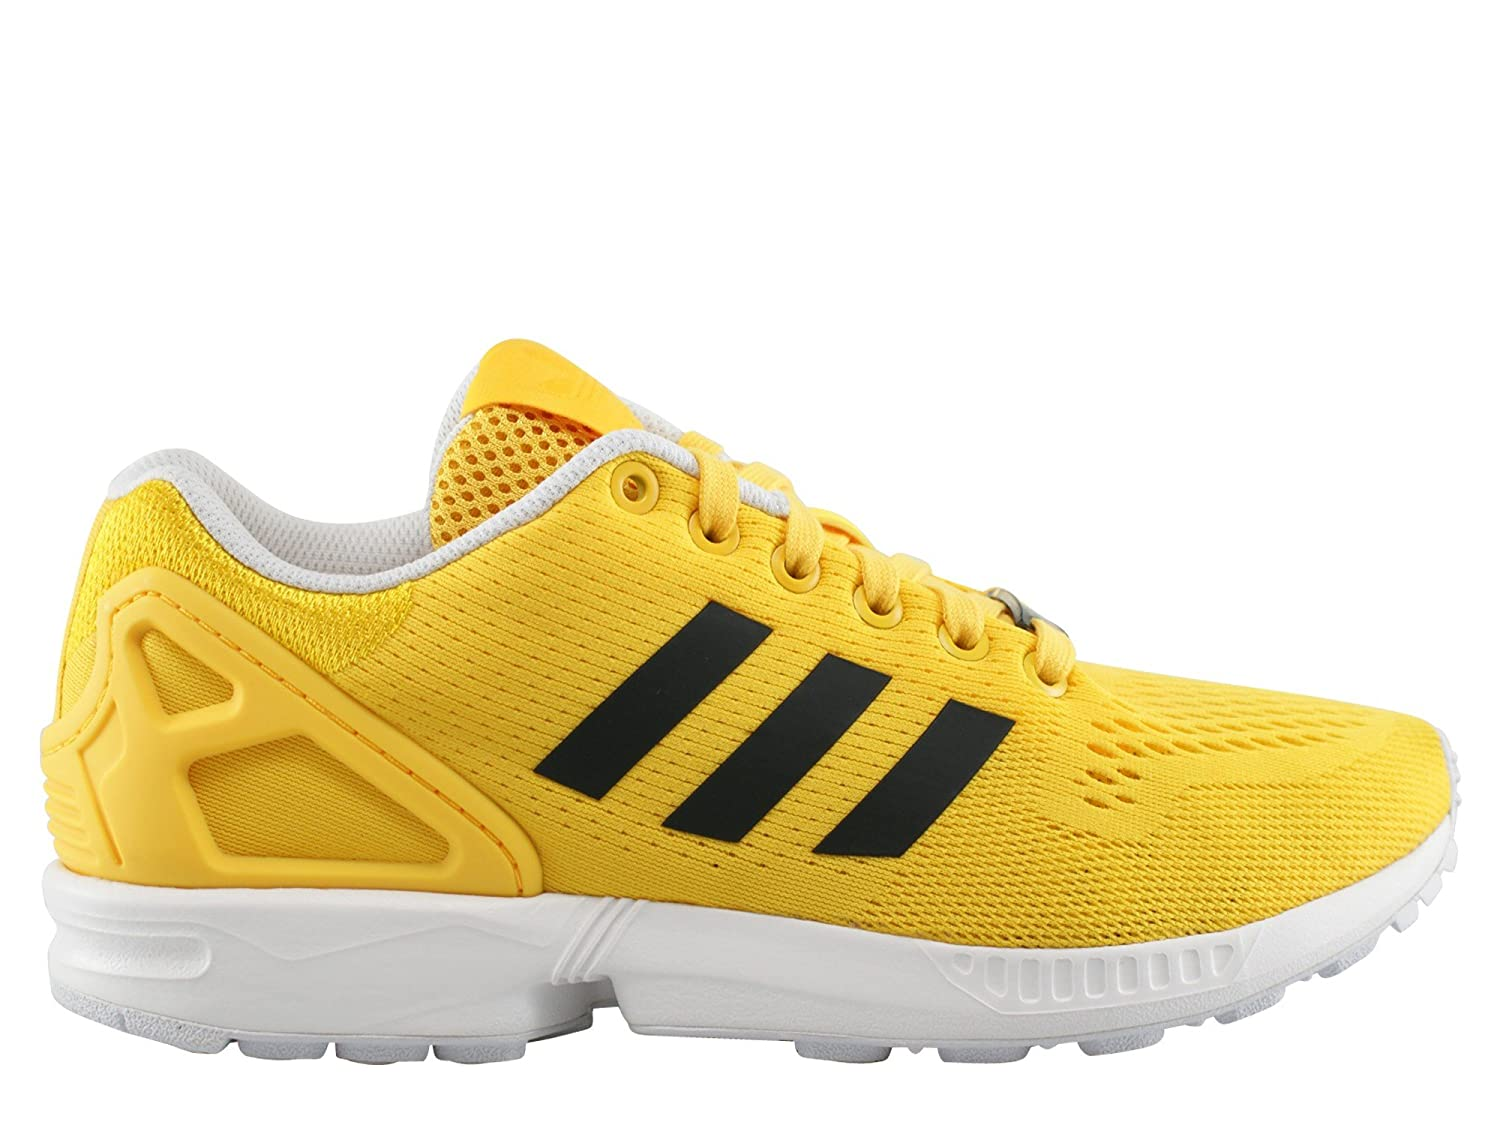 48850b840 ... canada adidas zx flux color black white yellow size 4.5 amazon shoes  bags 33133 48cf9